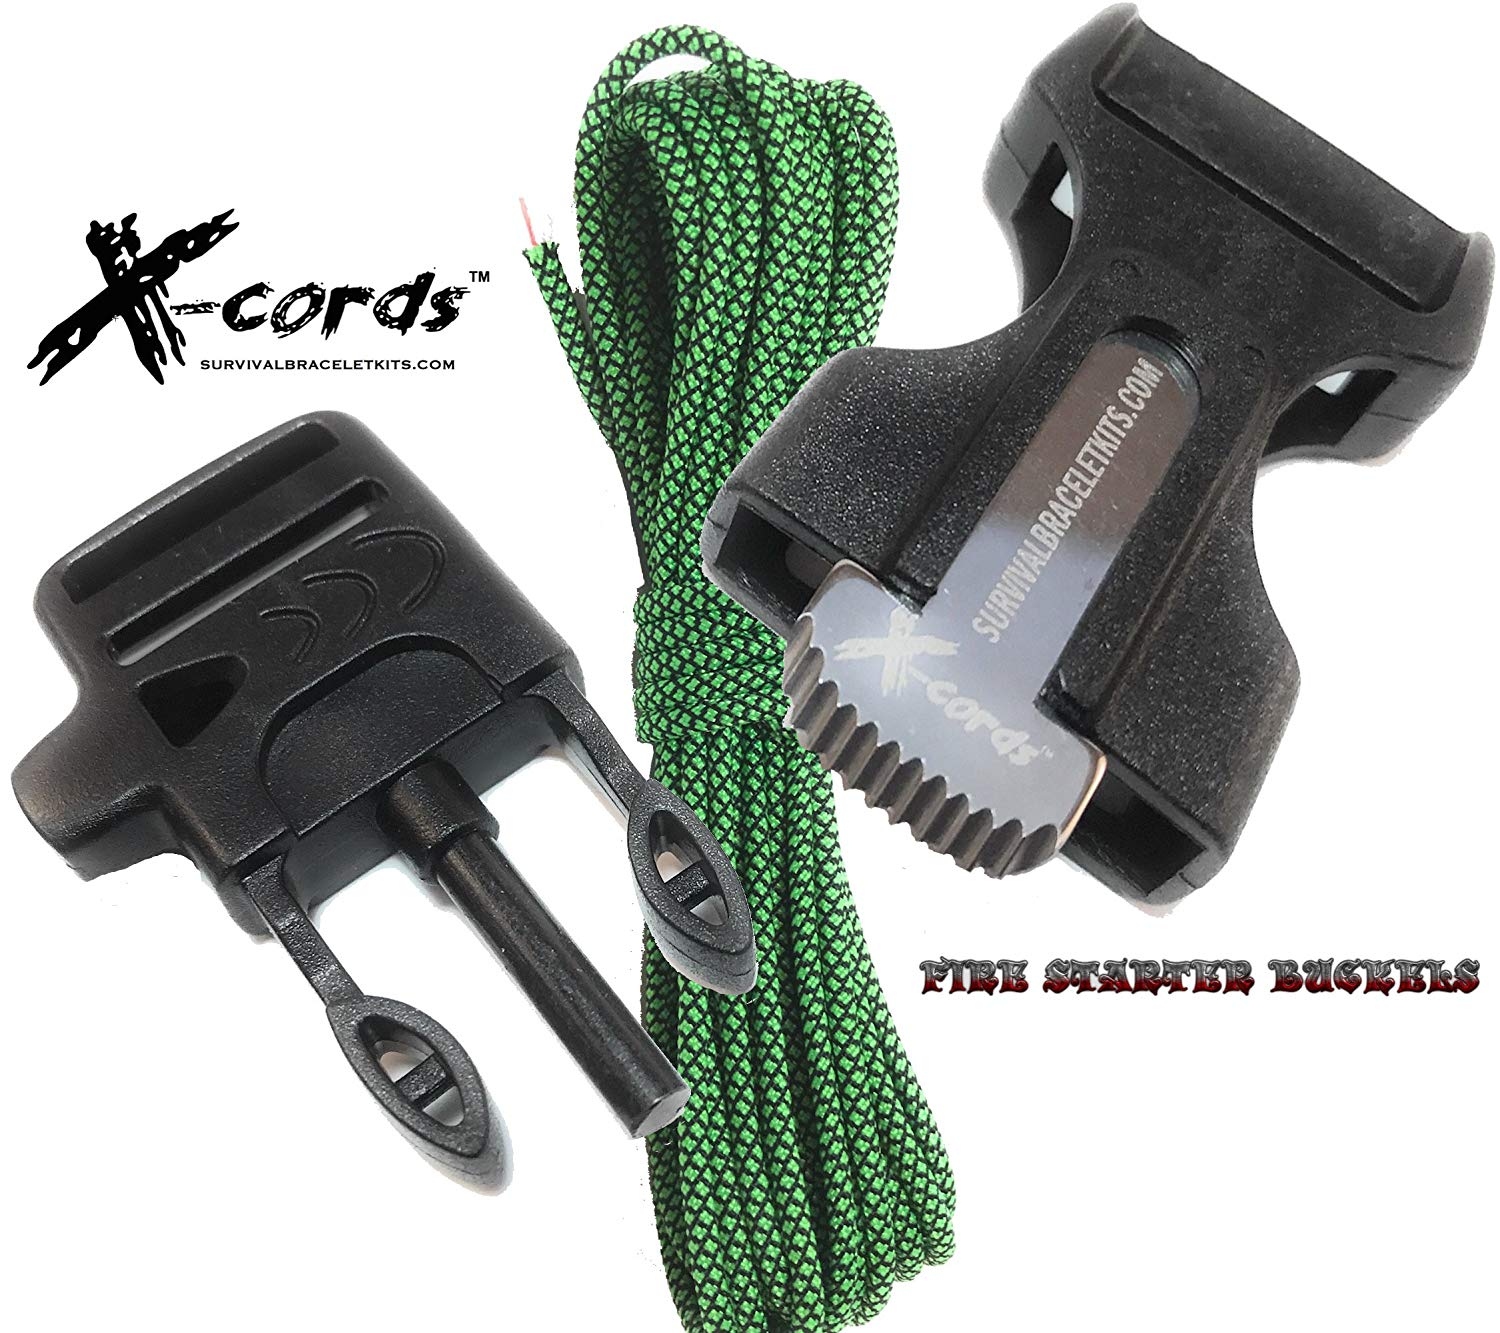 X-CORDS Paracord Fire Starter Paracord Bracelet Buckle Whistle Buckle Combo Fits all Paracord 550 750 and 850 Cord Survival Supplies